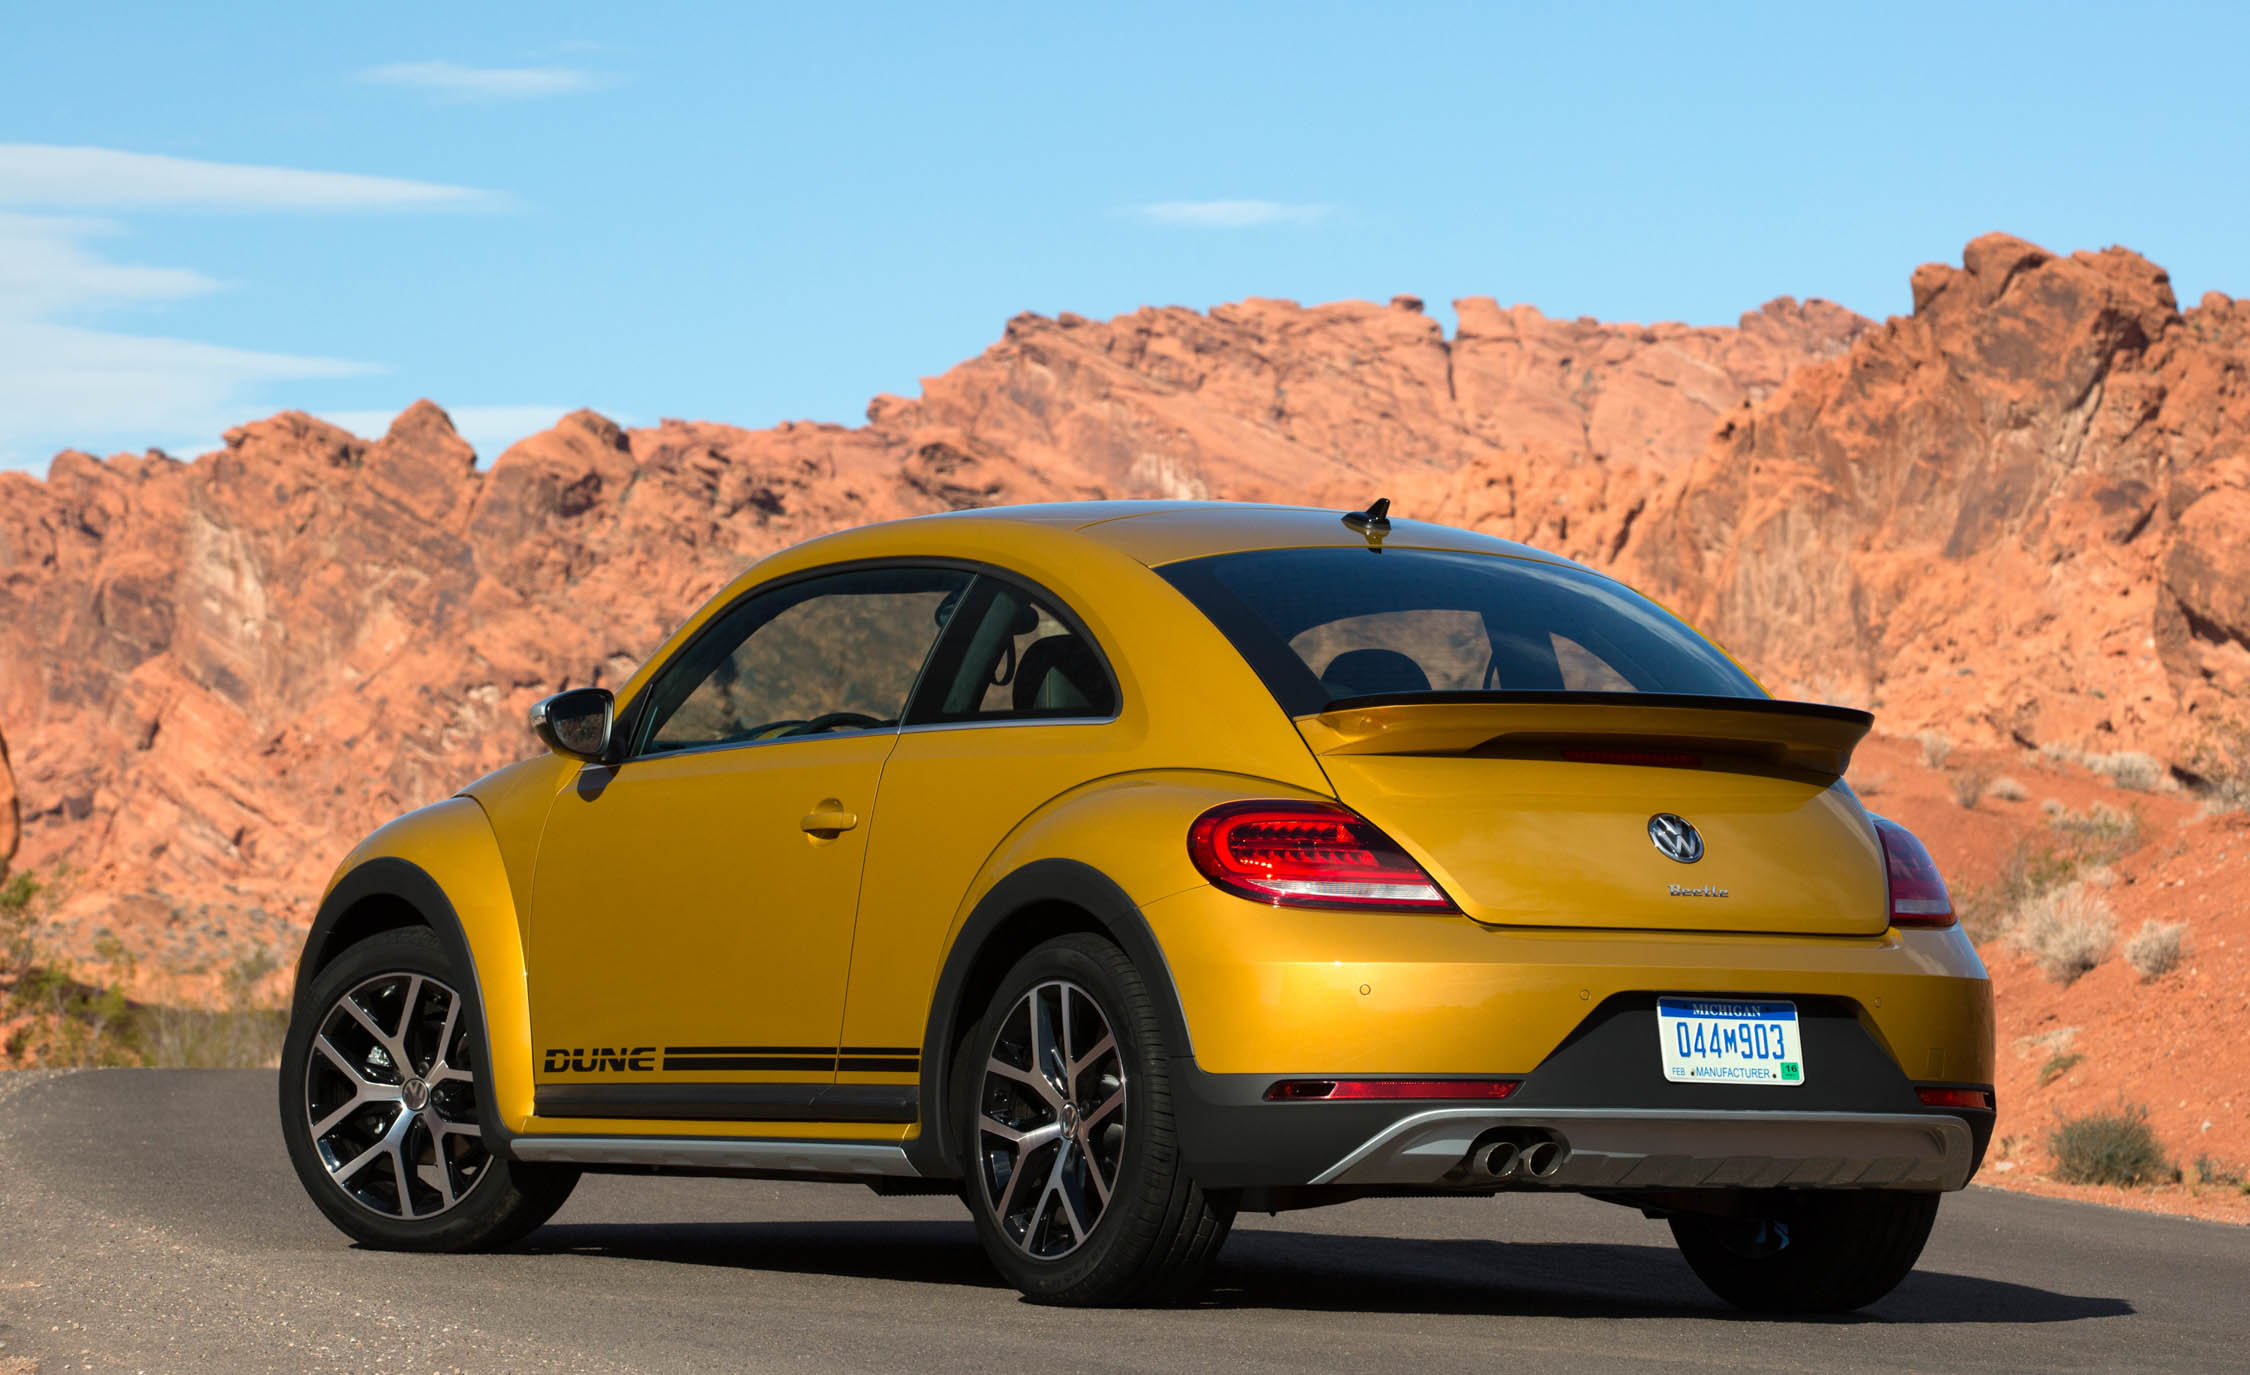 2016 Volkswagen Beetle Dune Coupe Exterior Full Rear and Side